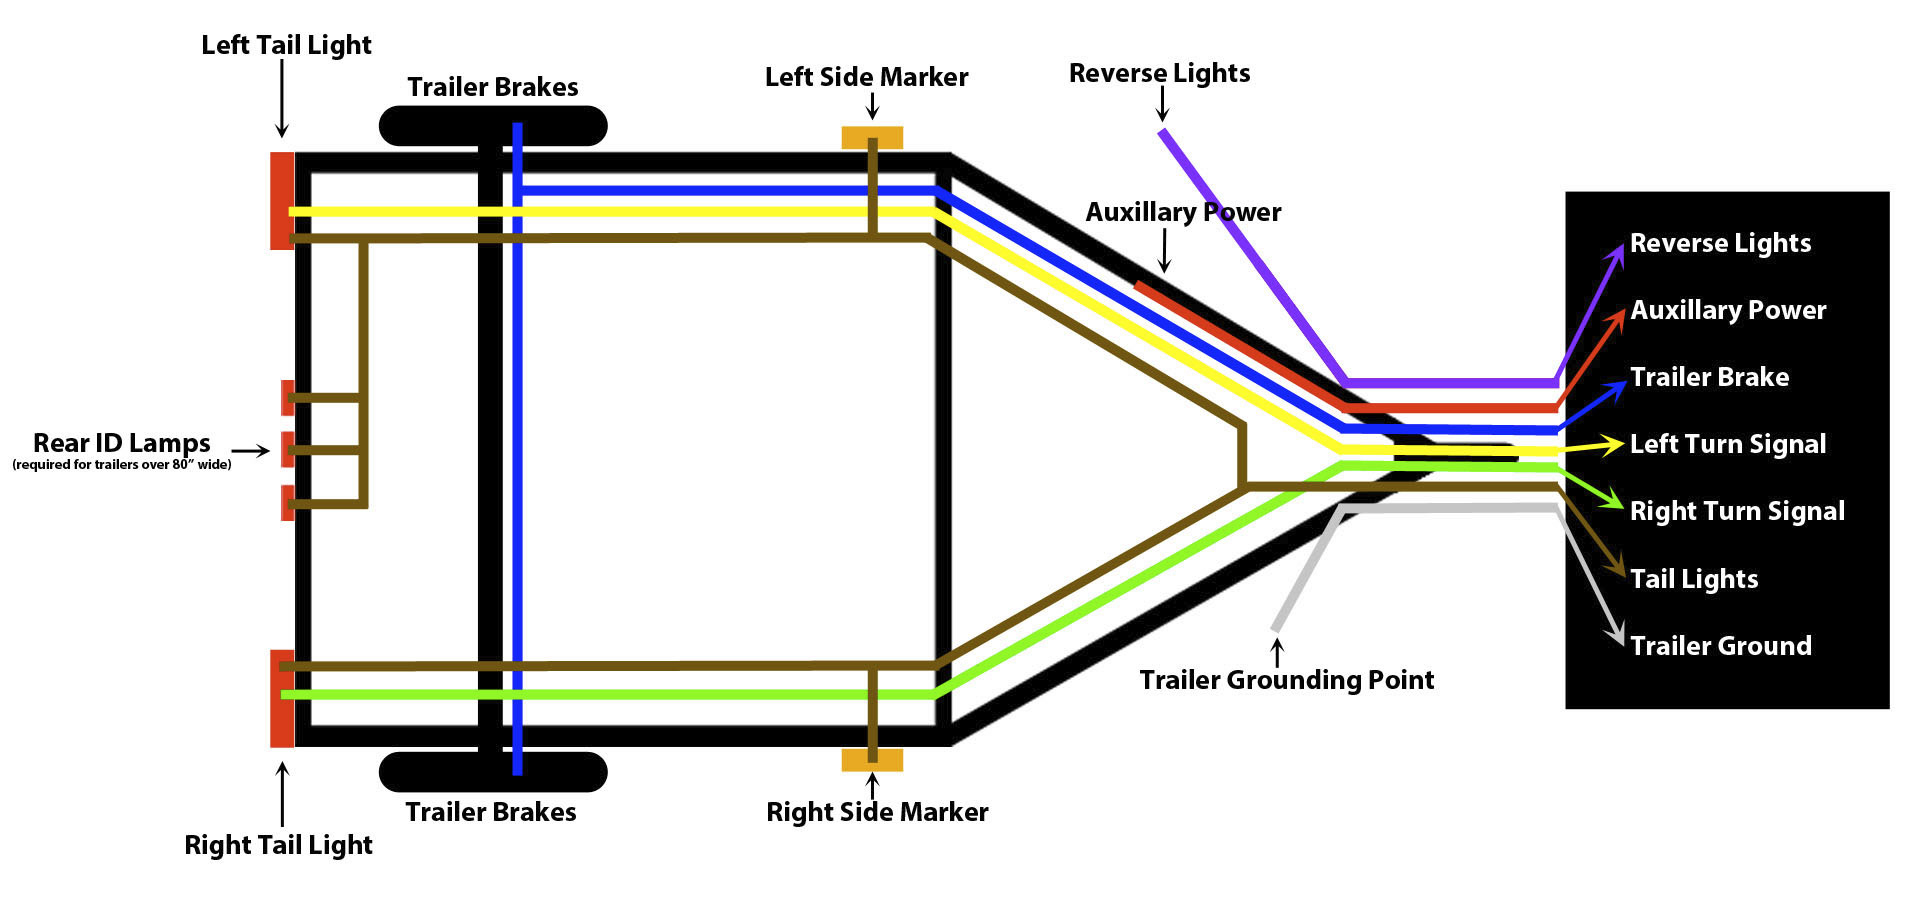 How To Wire Trailer Lights - Trailer Wiring Guide & Videos - Trailer Adapter Wiring Diagram